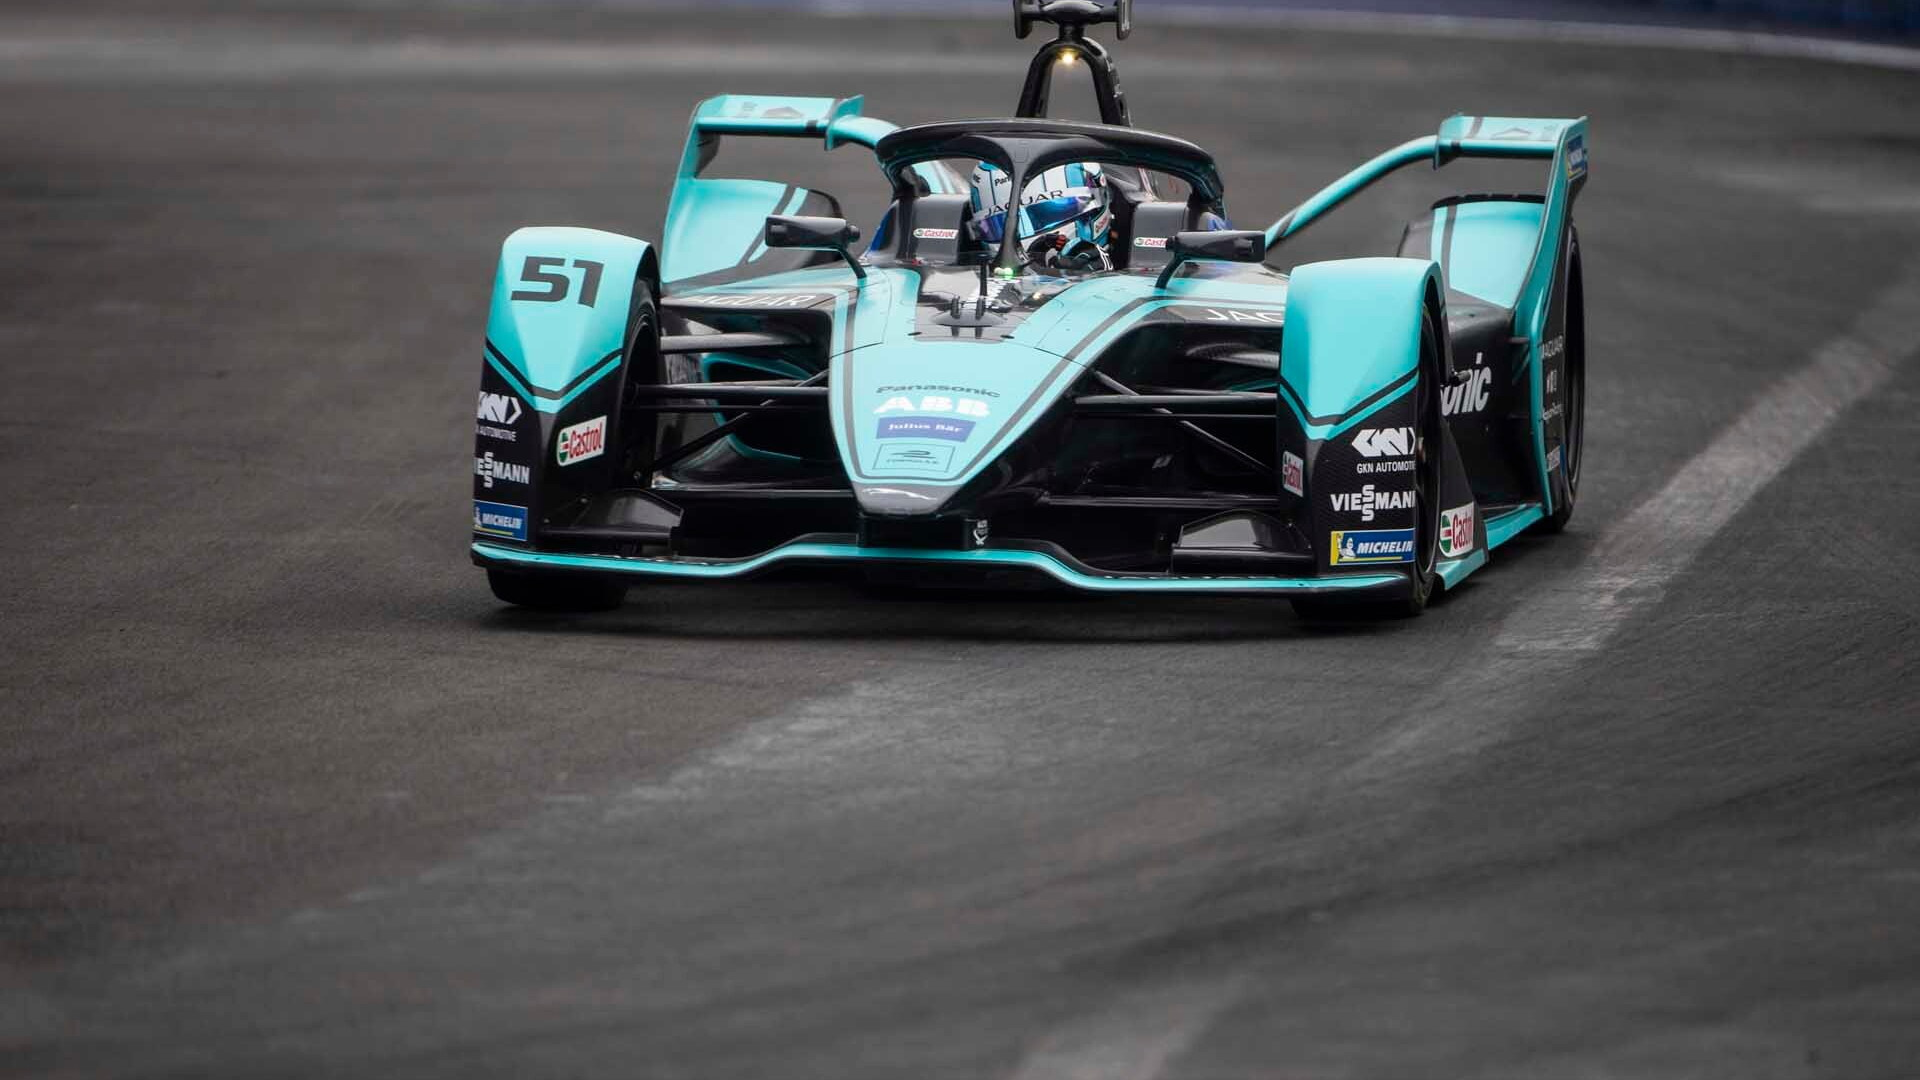 James Calado, Panasonic Jaguar Racing